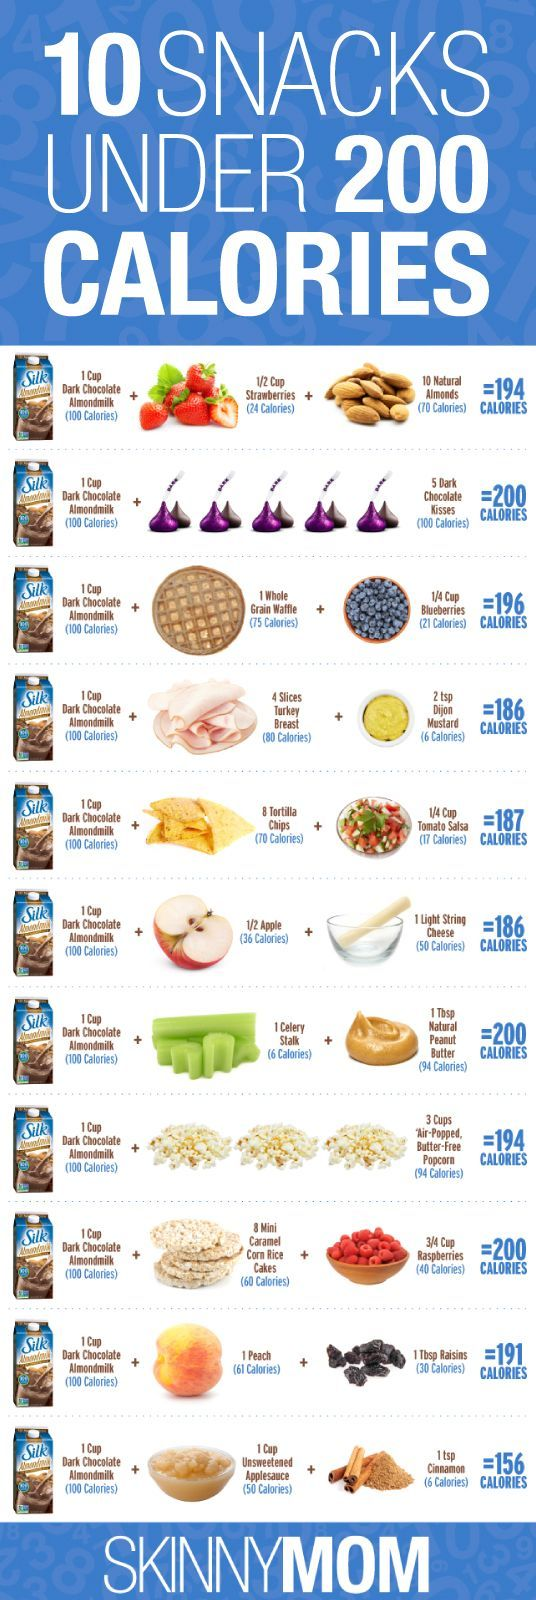 diabetics who enjoy food 10 snacks under 200 calories with silk calories food pinterest. Black Bedroom Furniture Sets. Home Design Ideas